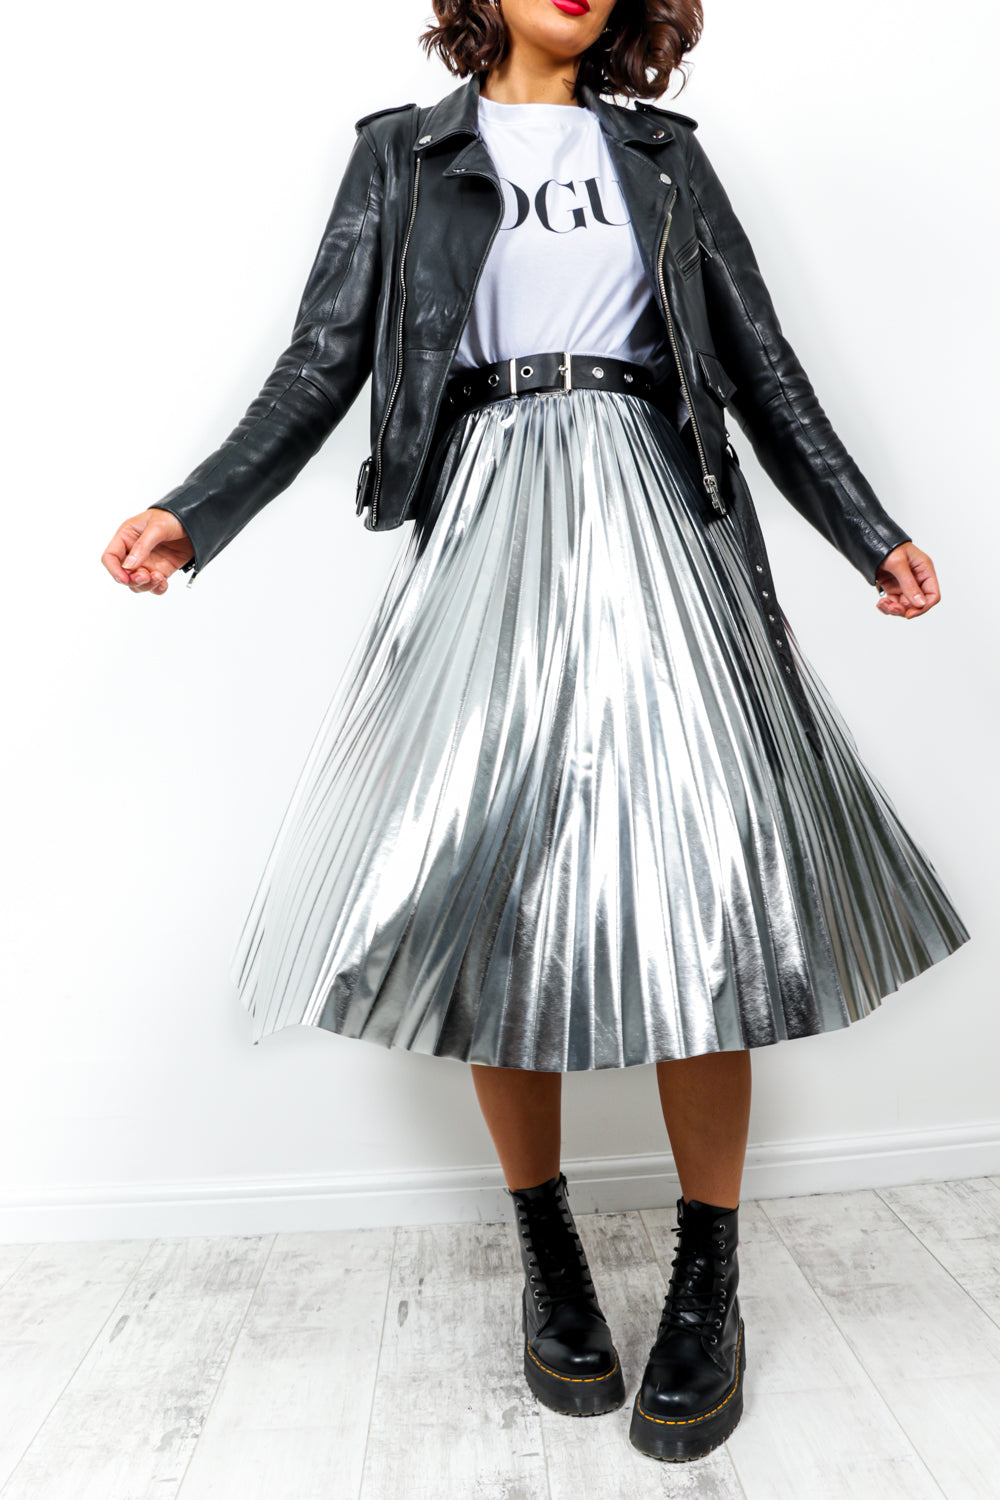 Make It Shine - Skirt In SILVER